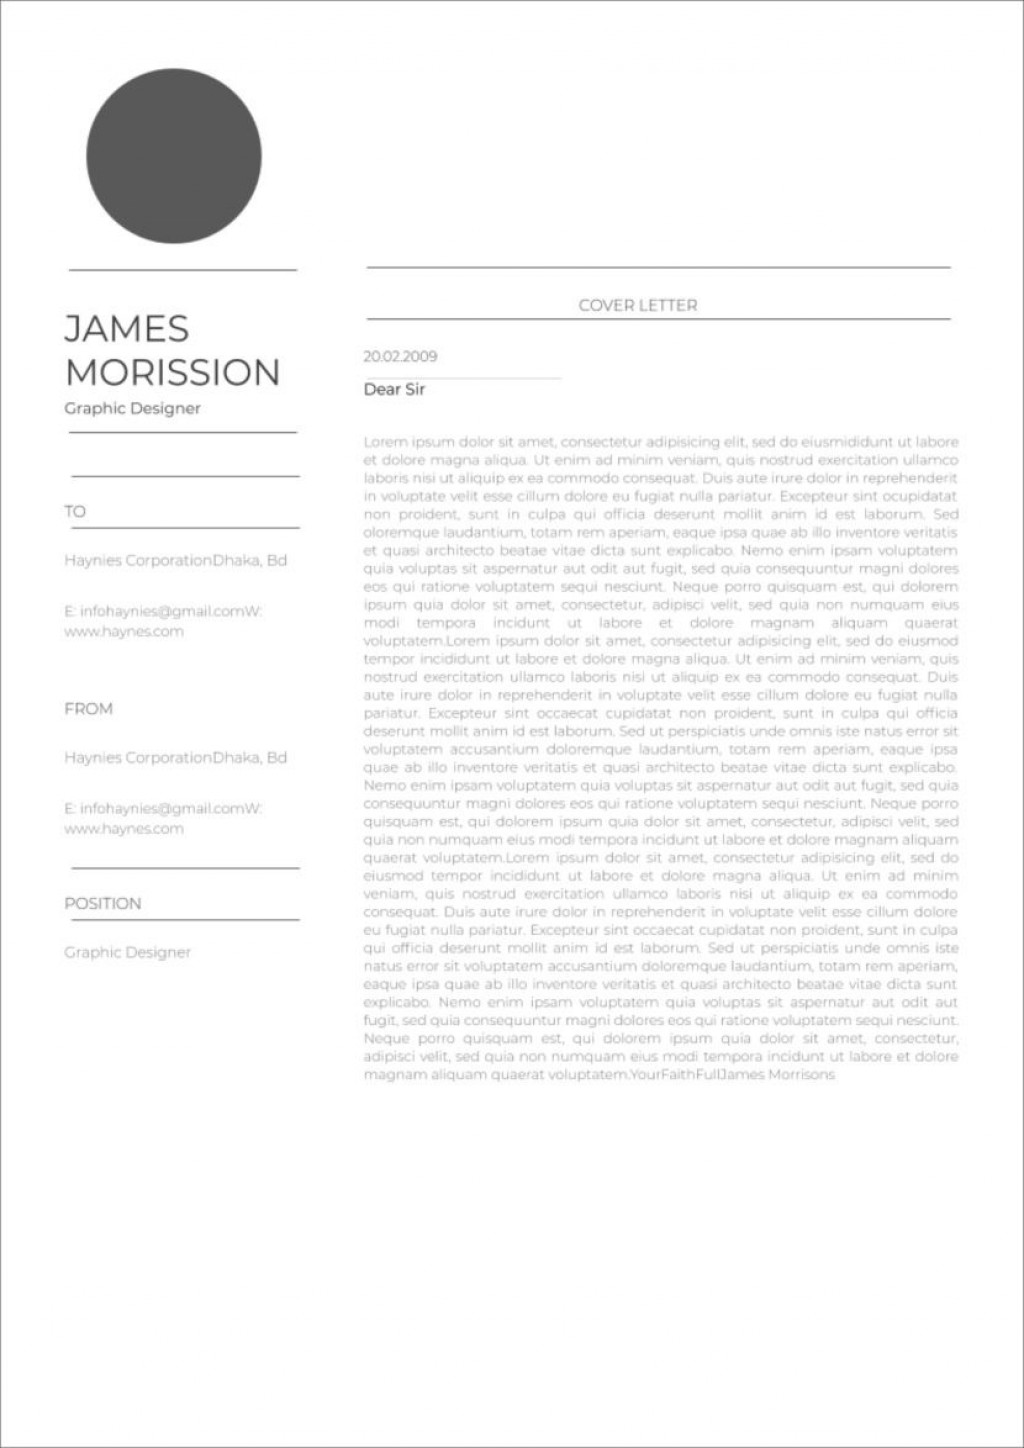 007 Beautiful Google Doc Cover Letter Template Photo  Swis Free RedditLarge